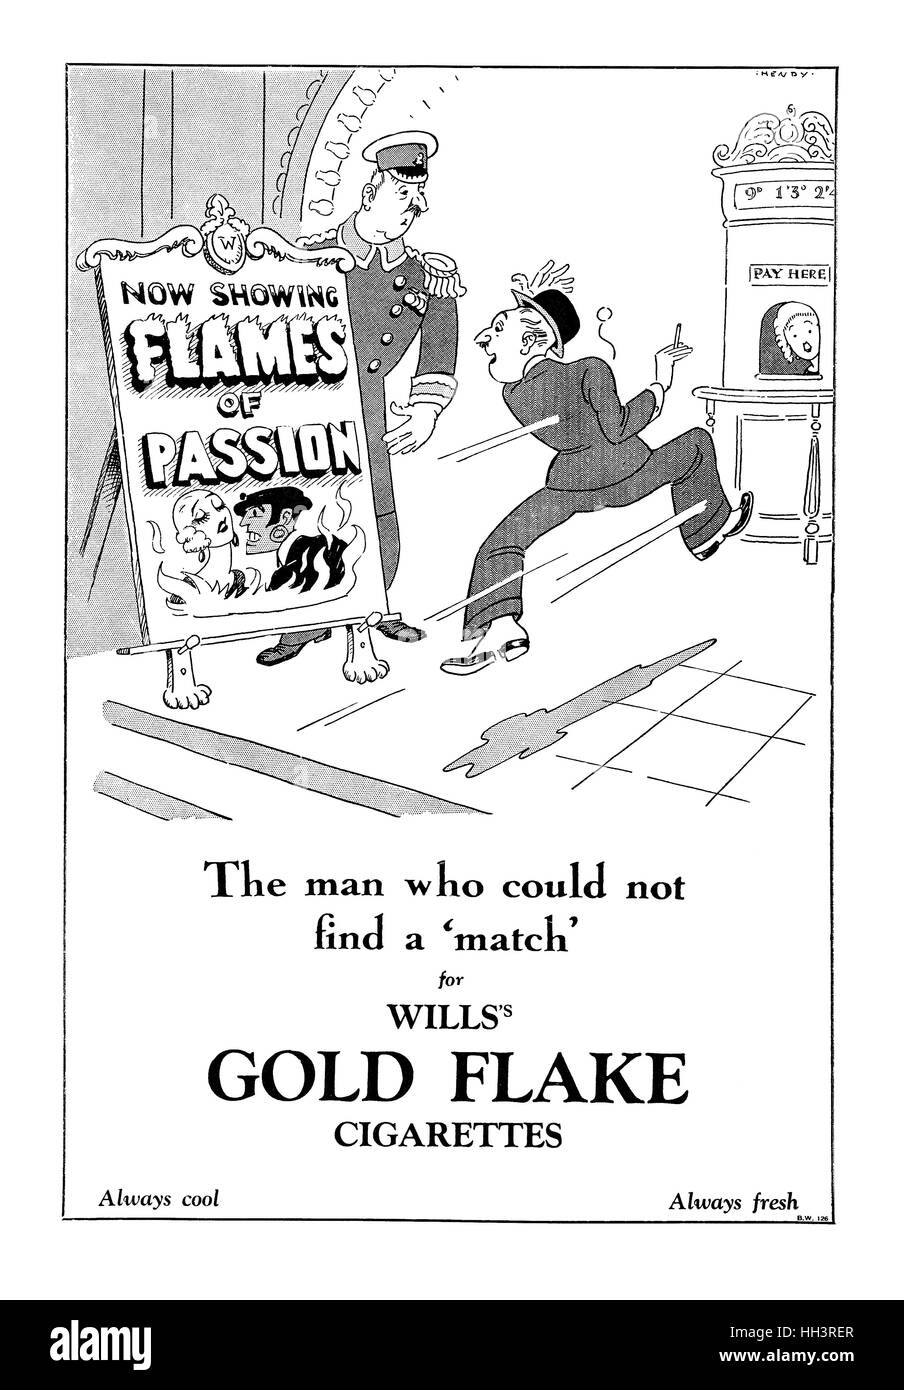 1929 British advertisement for Wills's Gold Flake Cigarettes - Stock Image